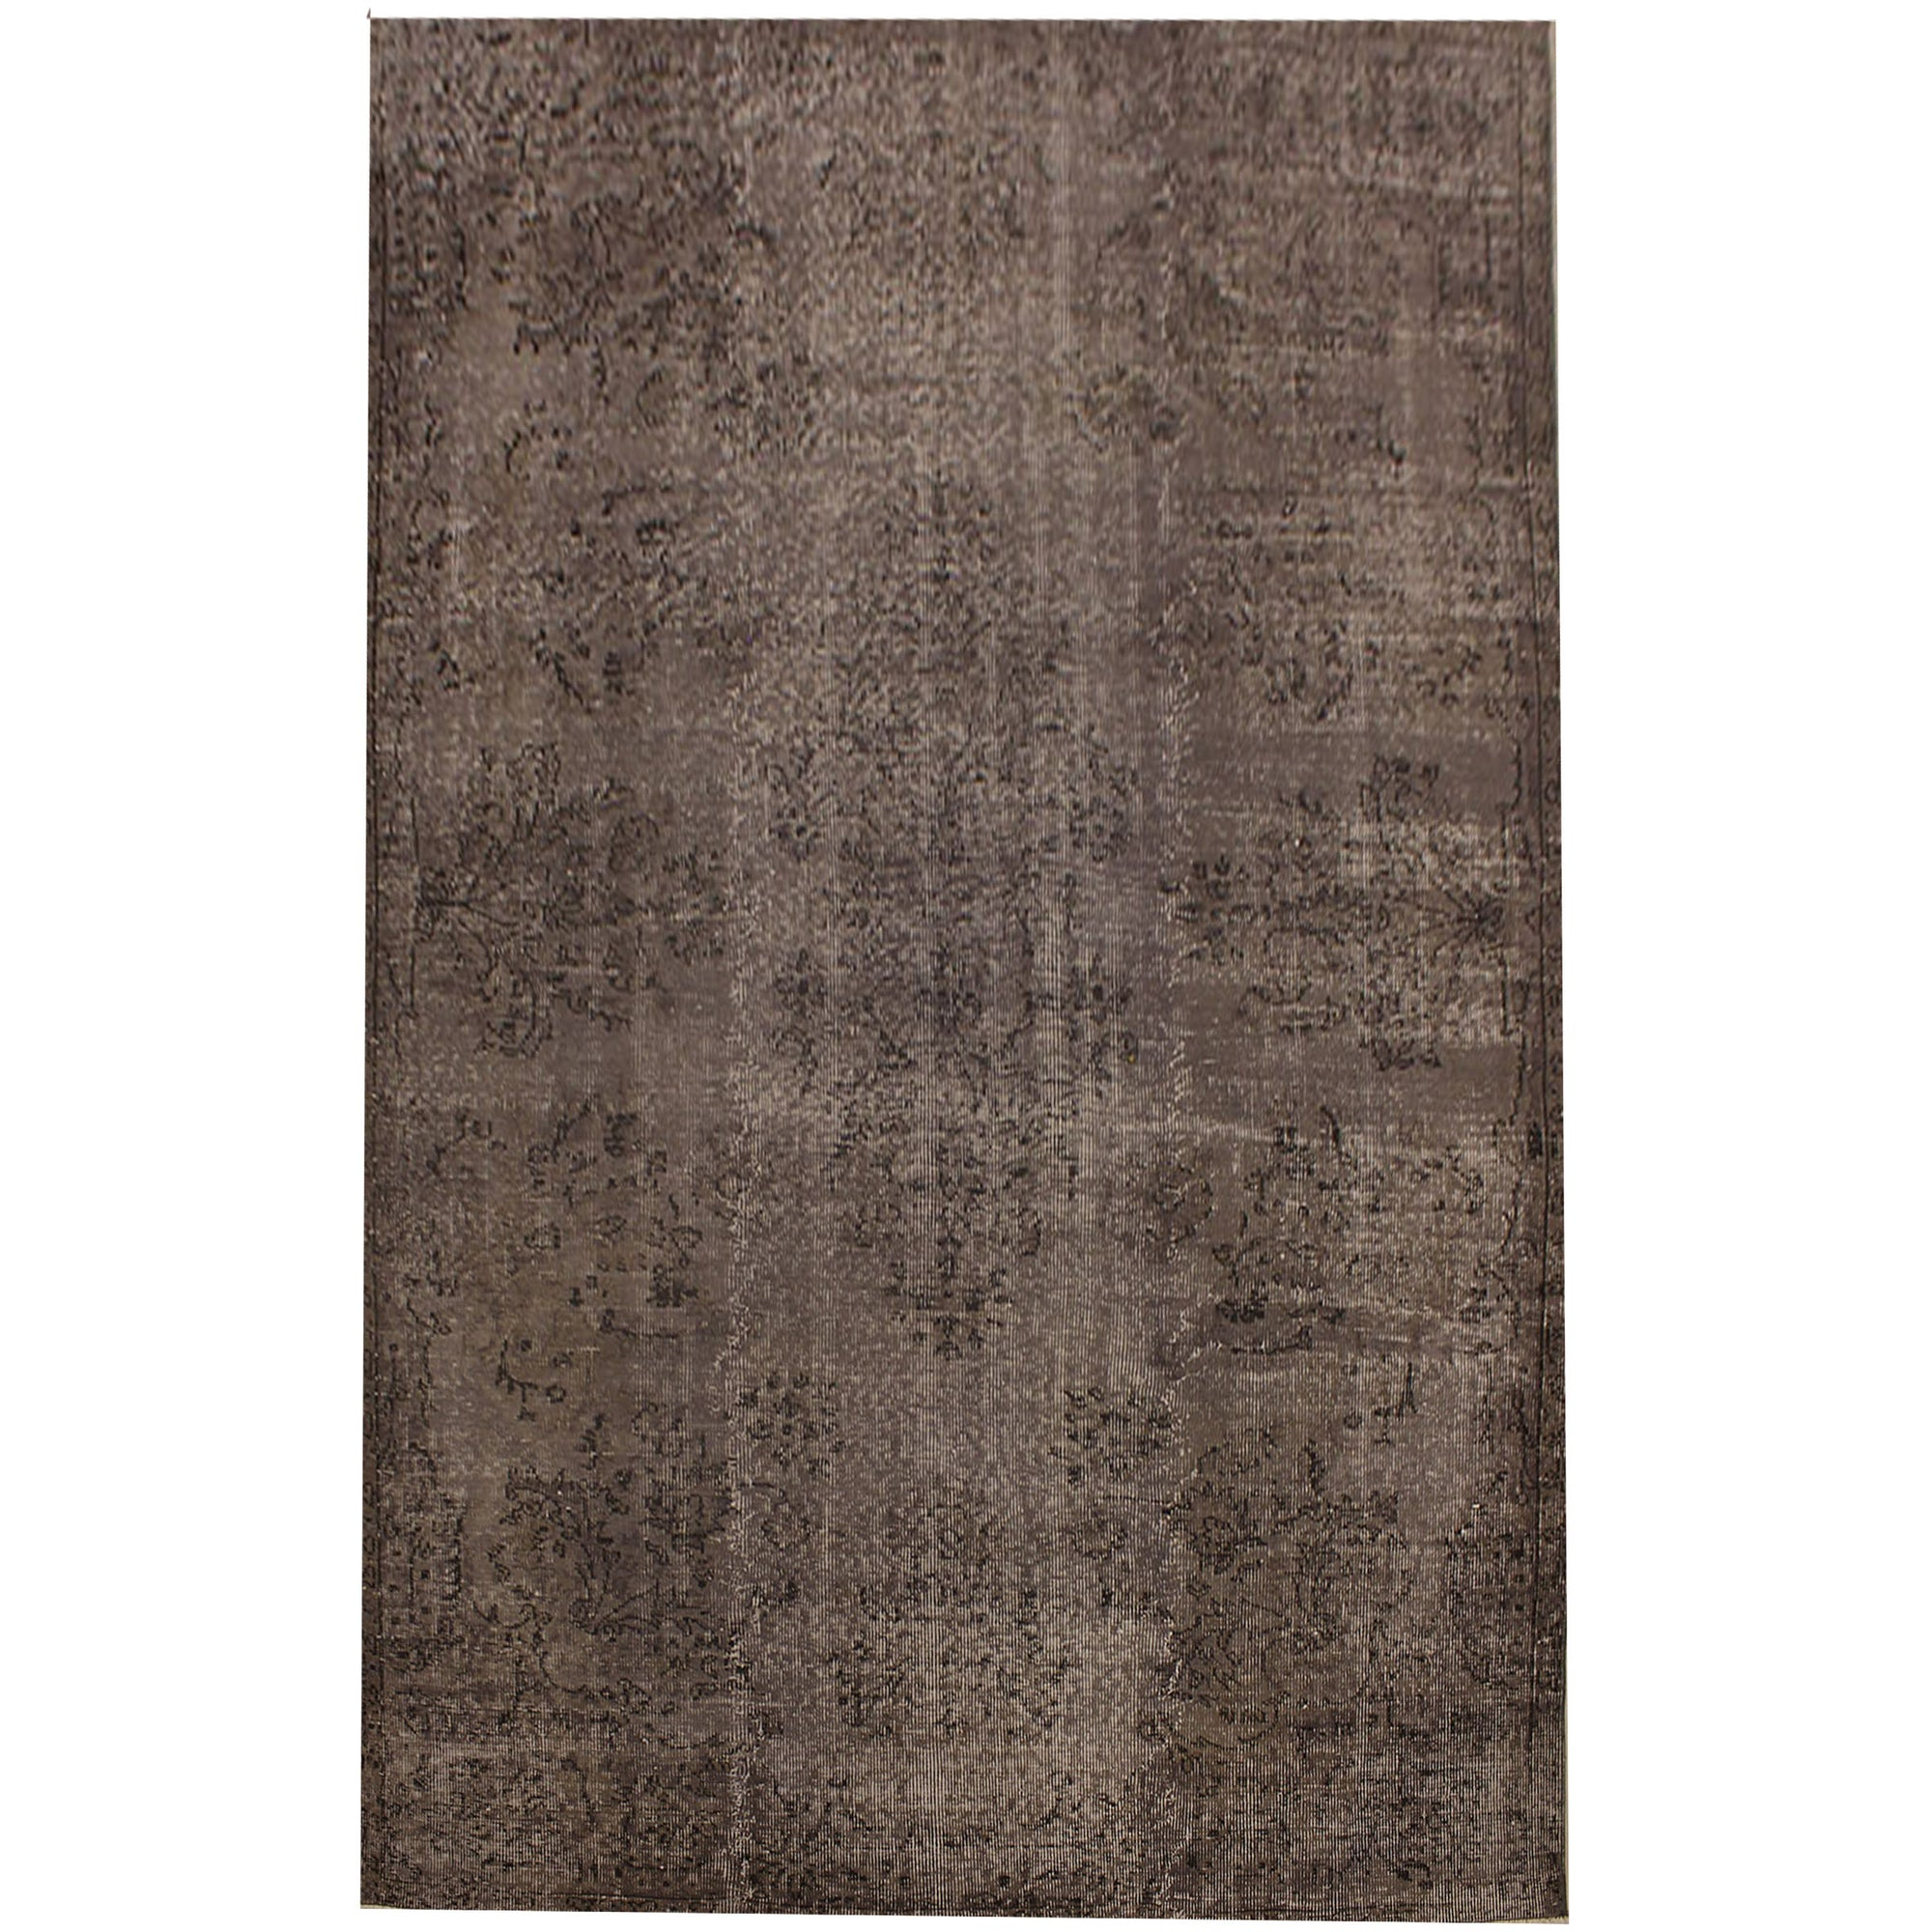 169 X 292 Anatolian Hand Knotted Carpet Vintage Style 60N2439